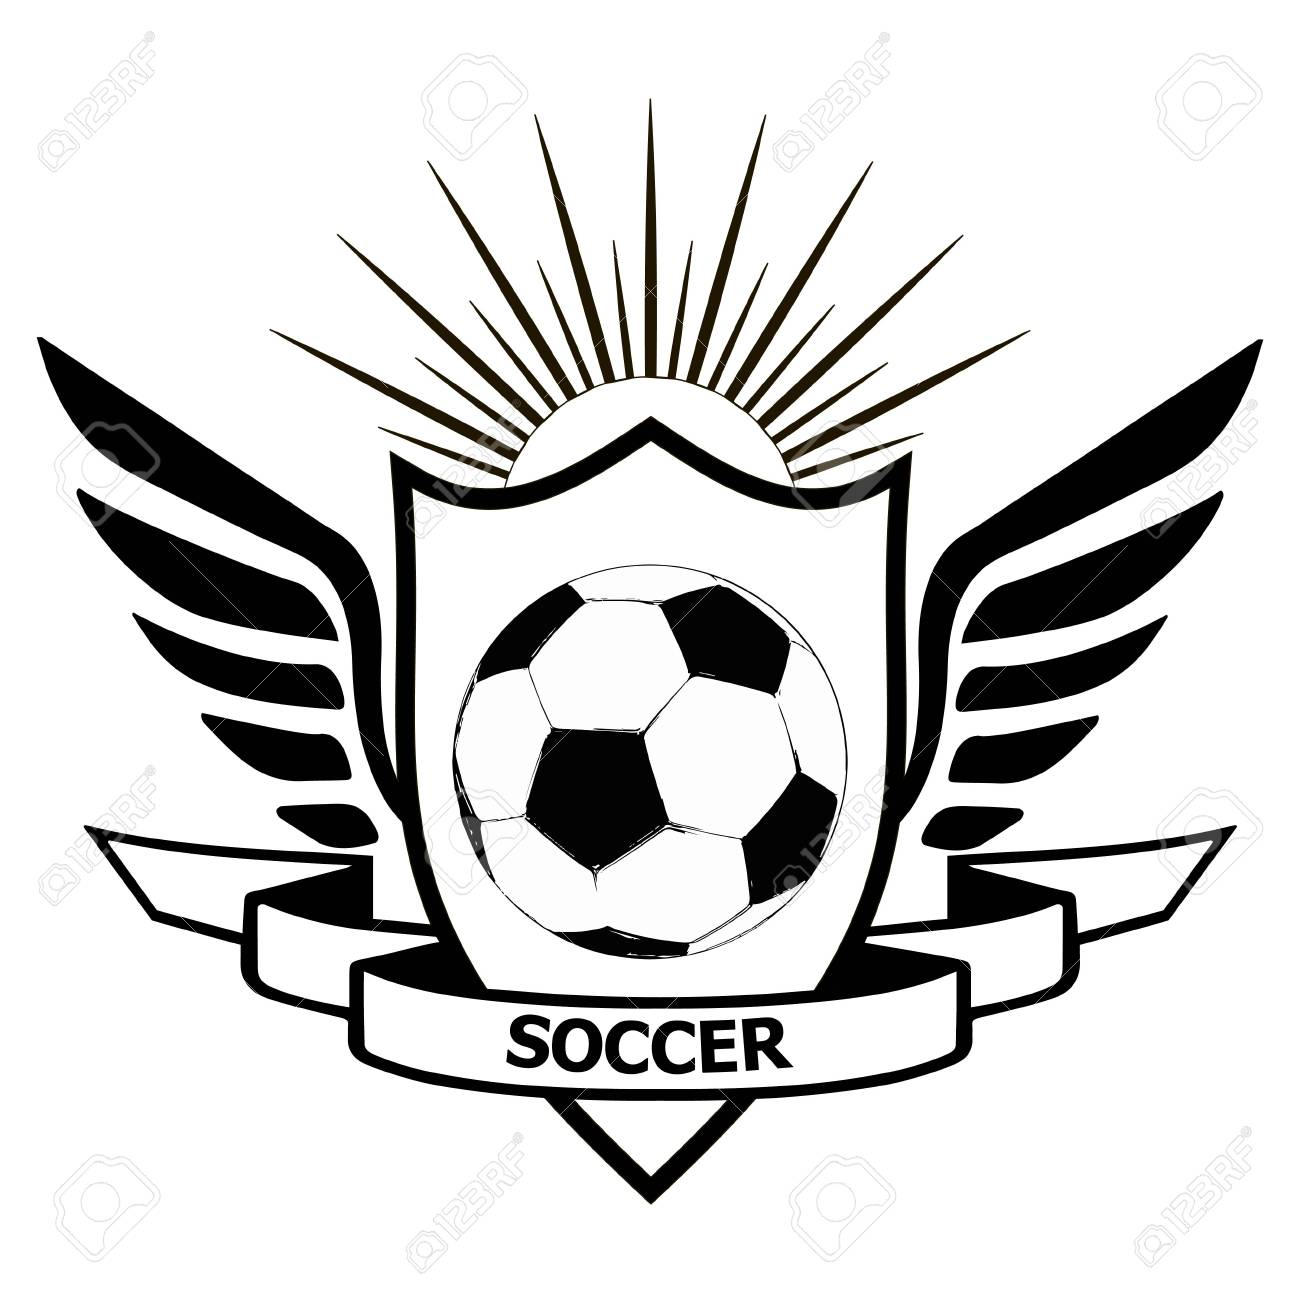 logo soccer team heraldic shield with wings banner of team soccer